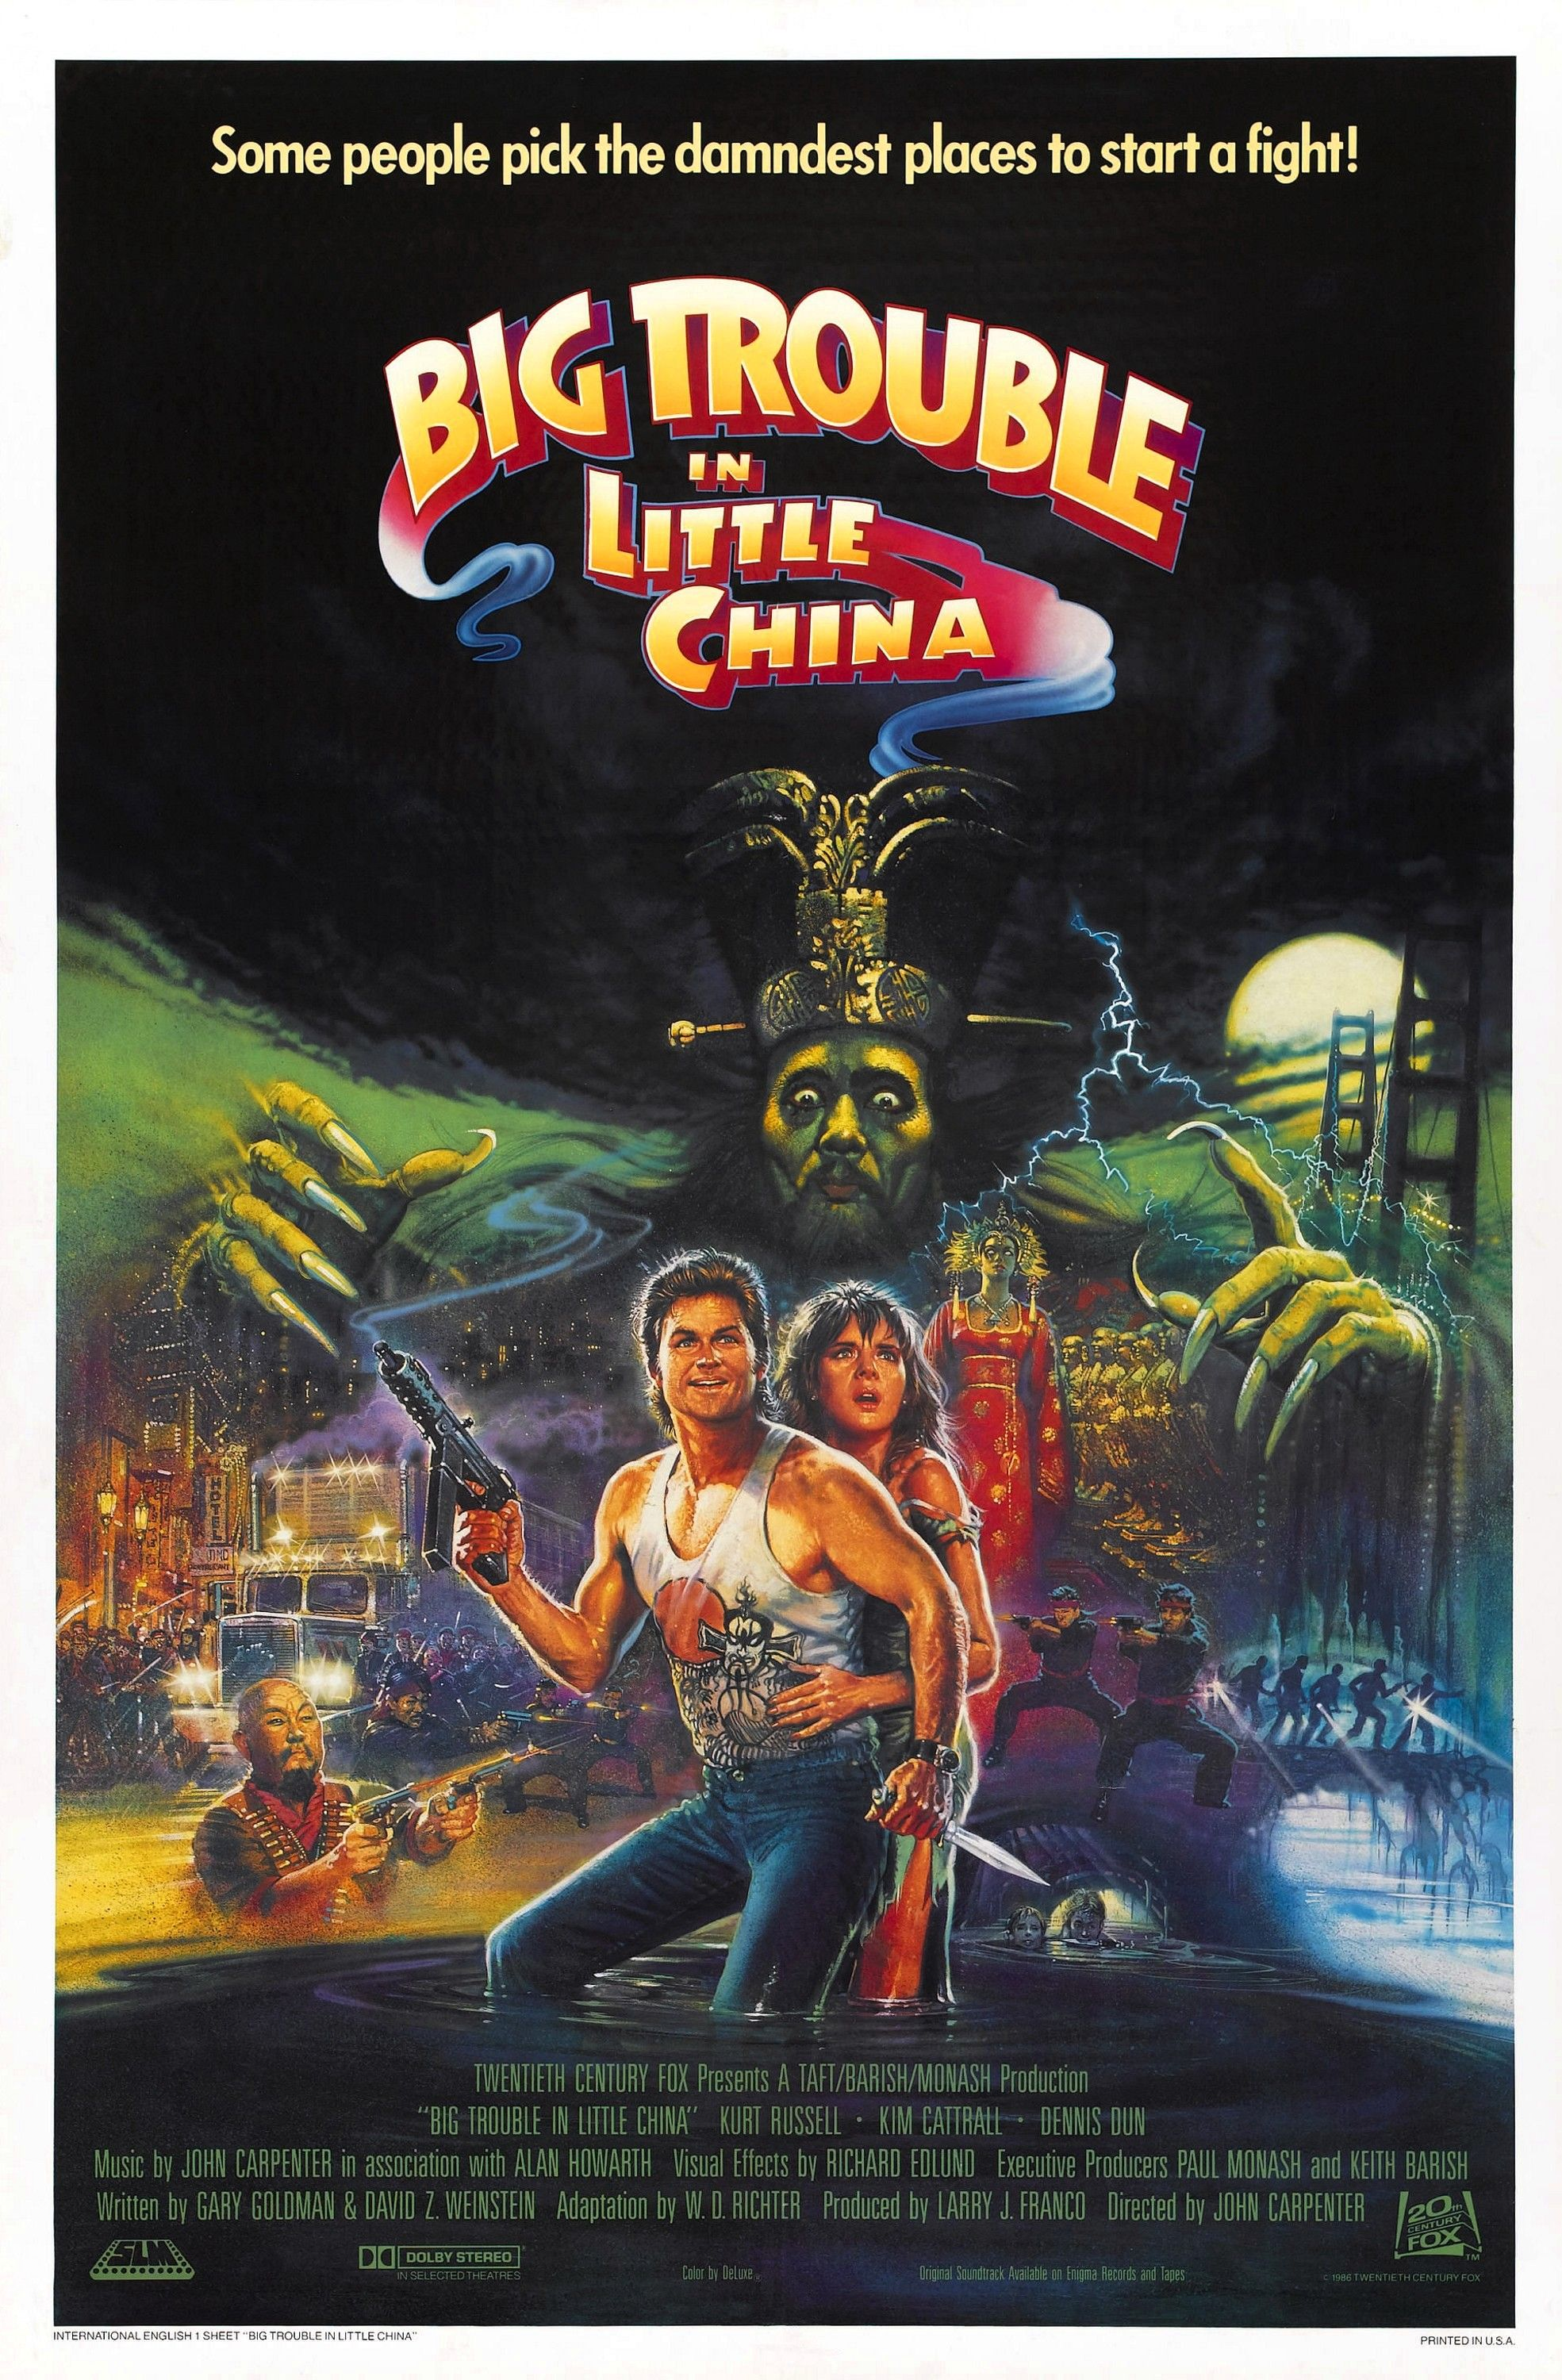 PARC AT MIDNIGHT: BIG TROUBLE IN LITTLE CHINA